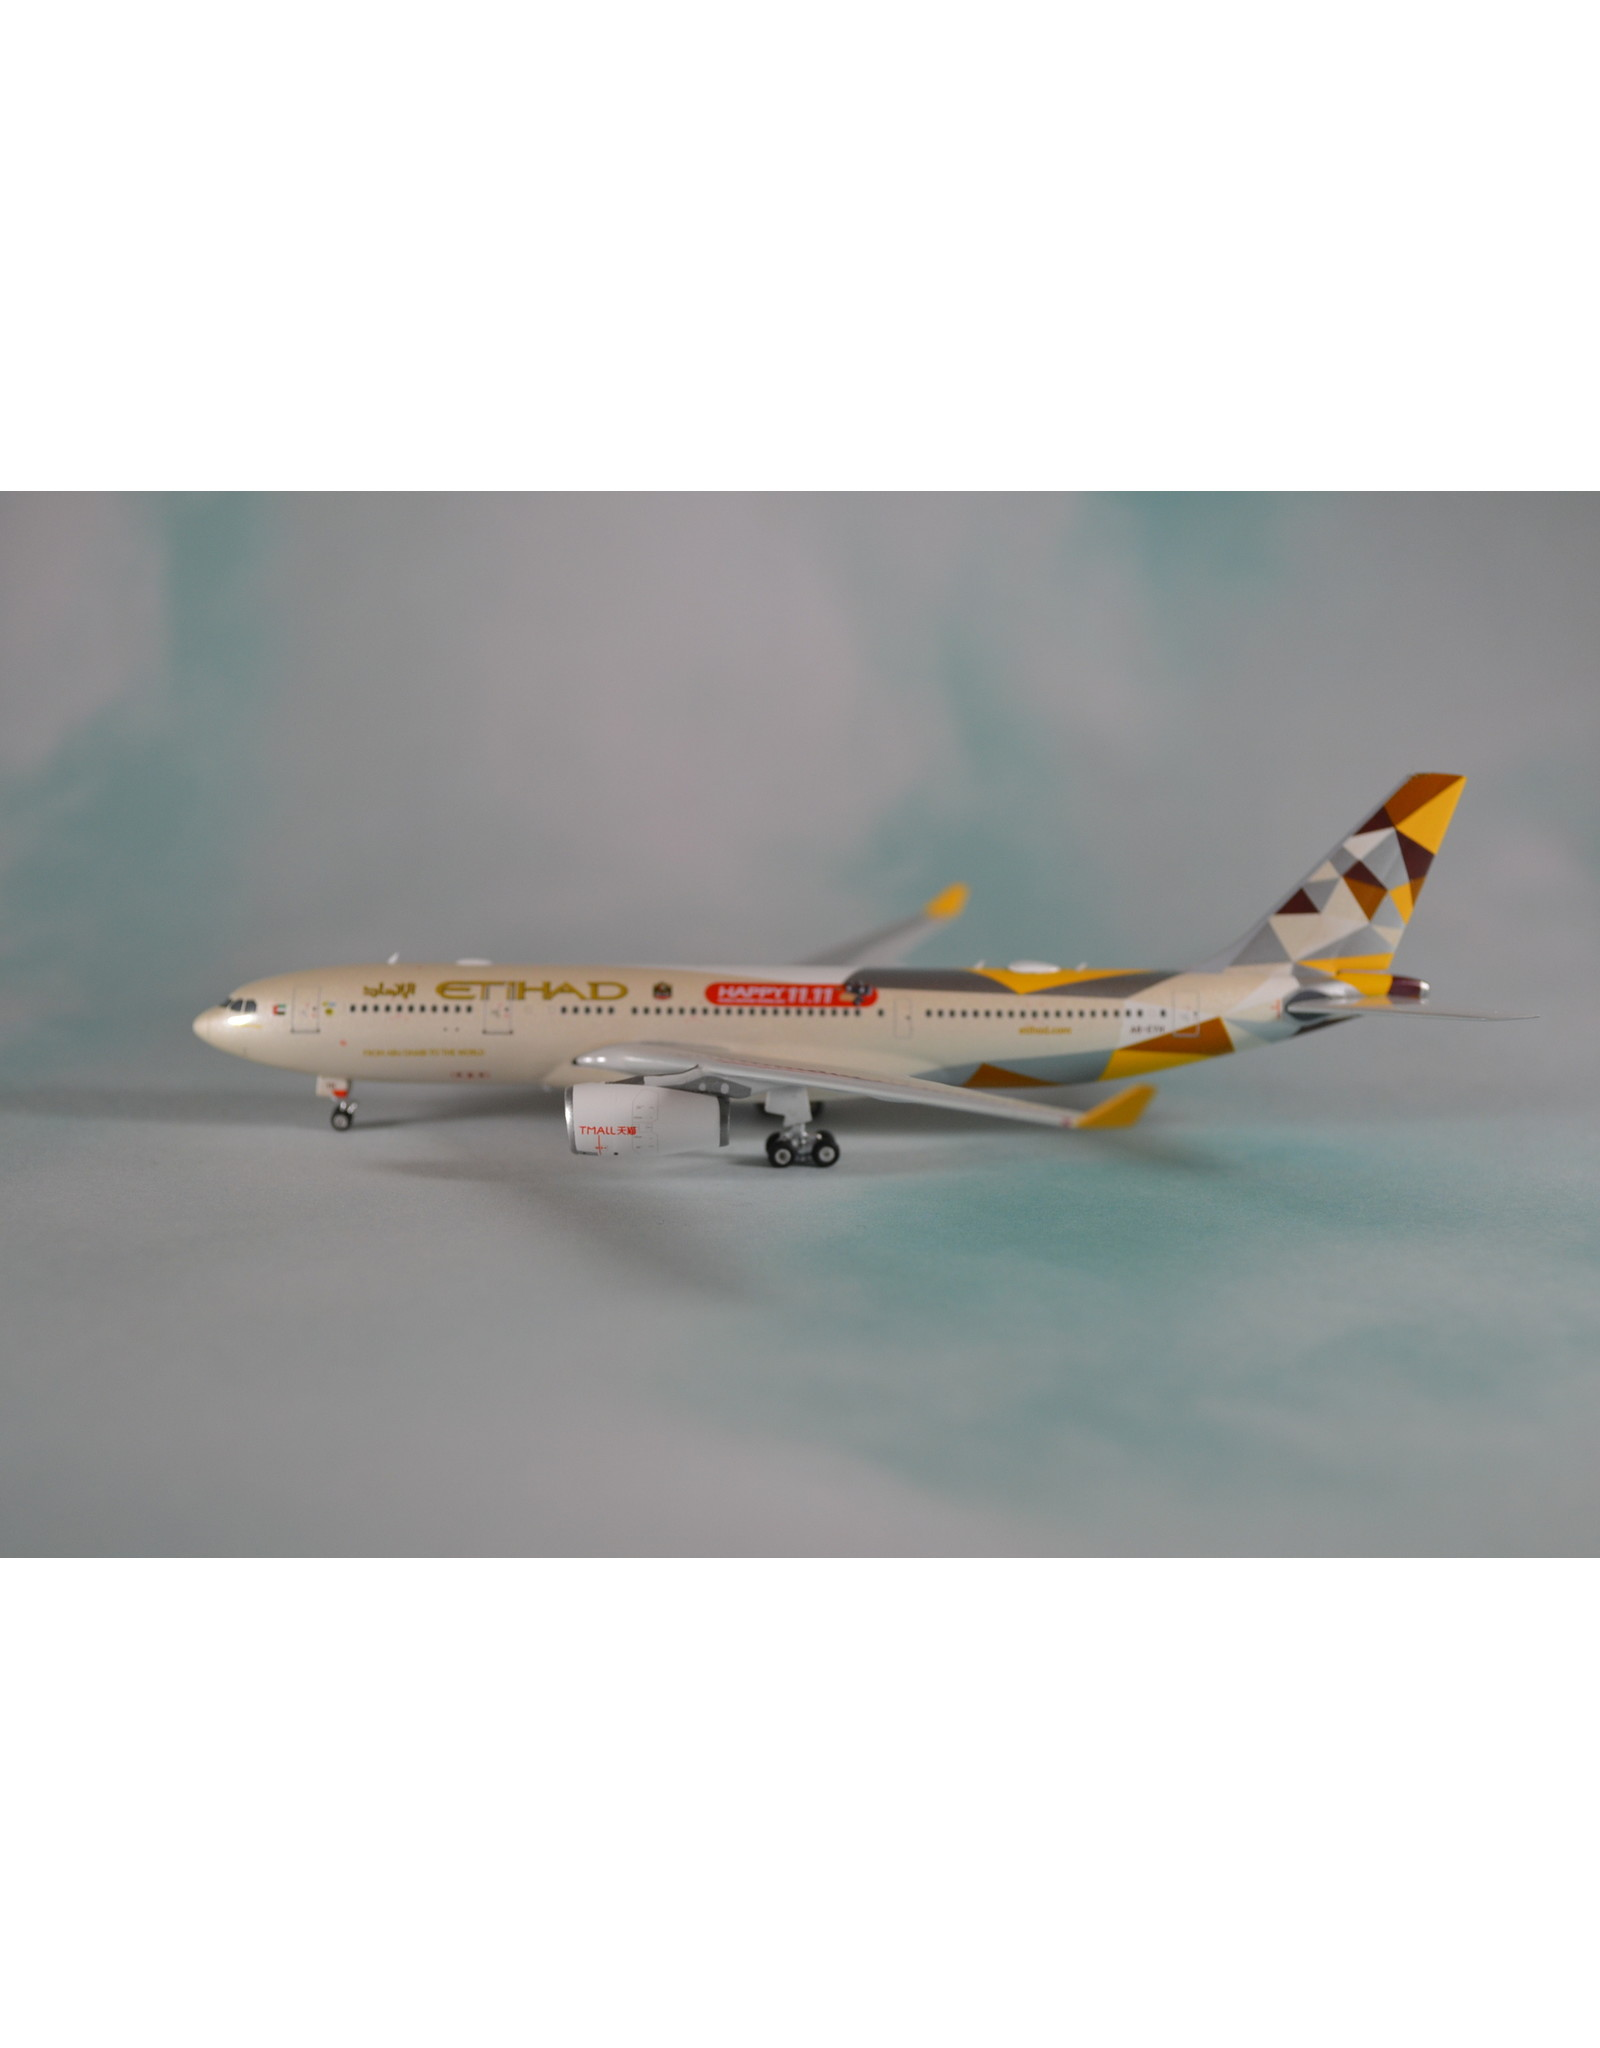 PH4 Etihad A330-200 Happy 11.11, TMall A6-EYH